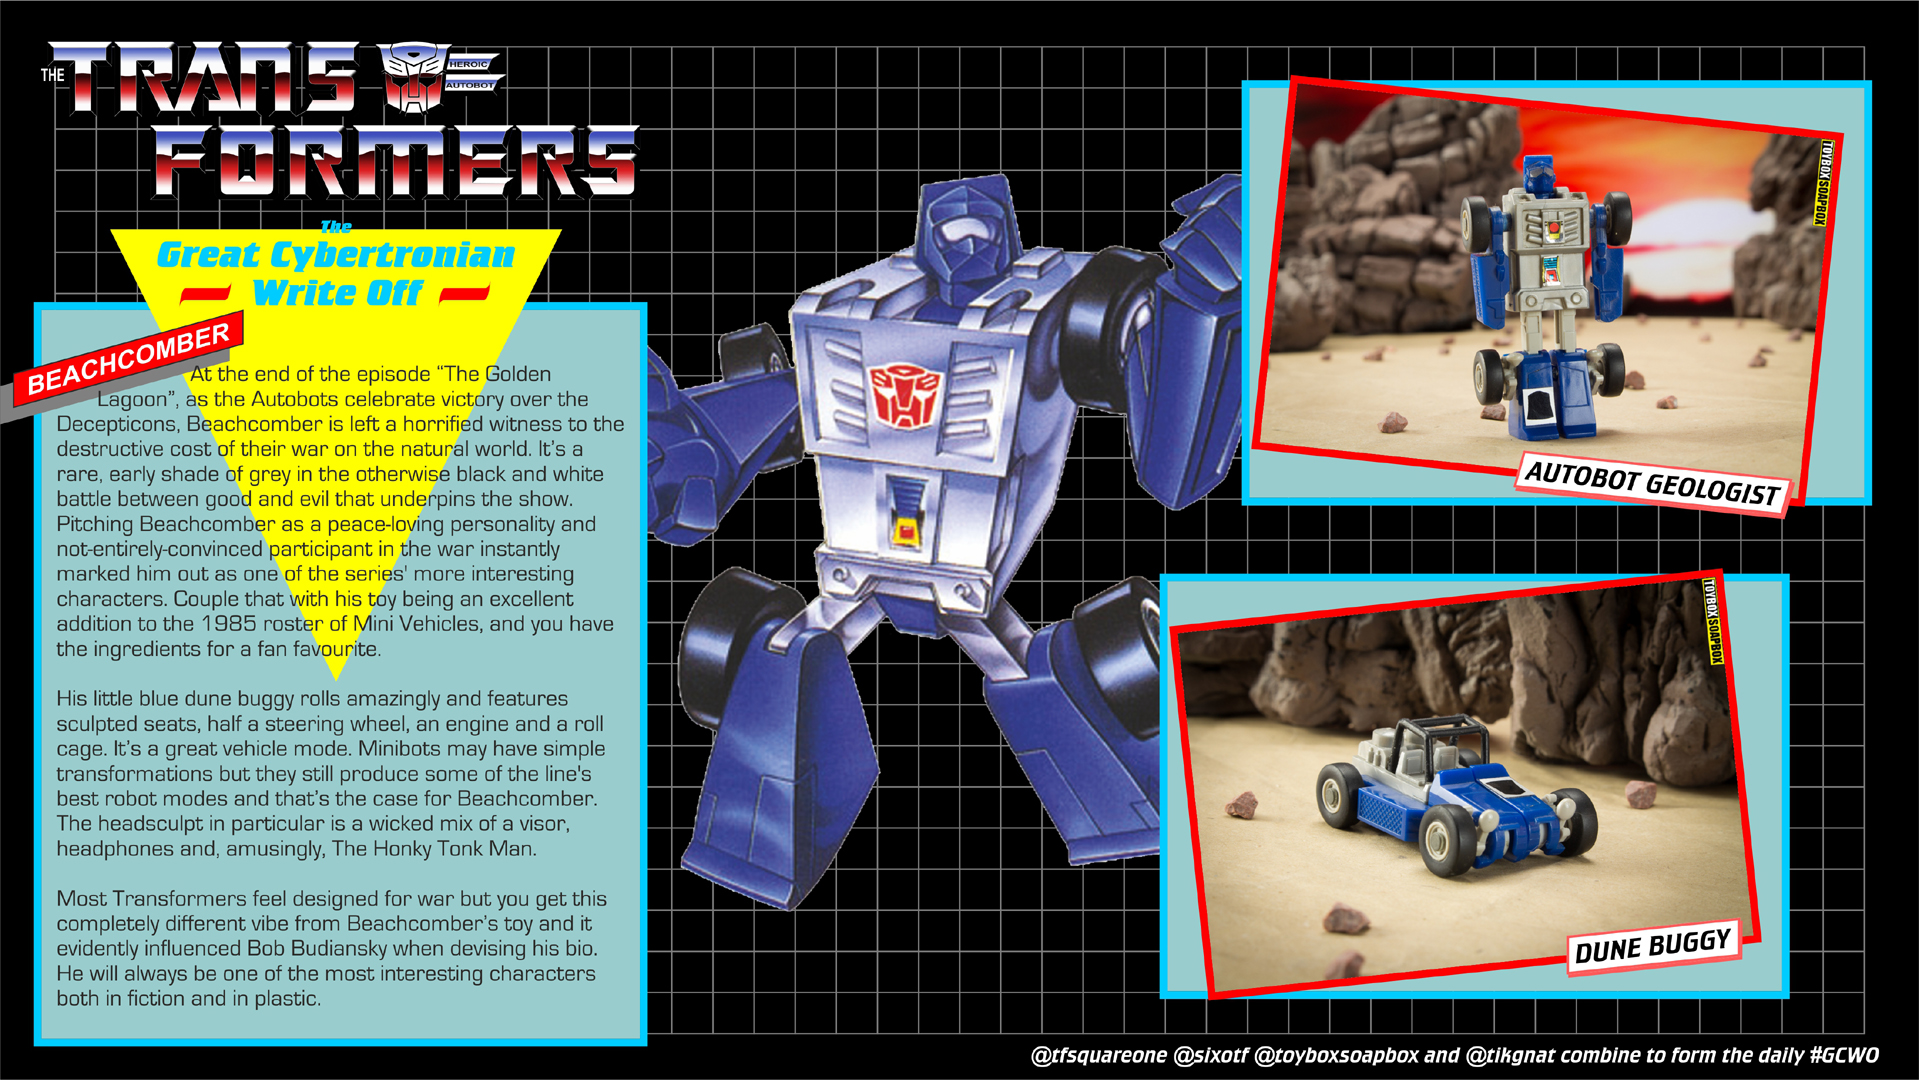 Transformers-g1-beachcomber-vintage-toy-review-#gcwo.jpg